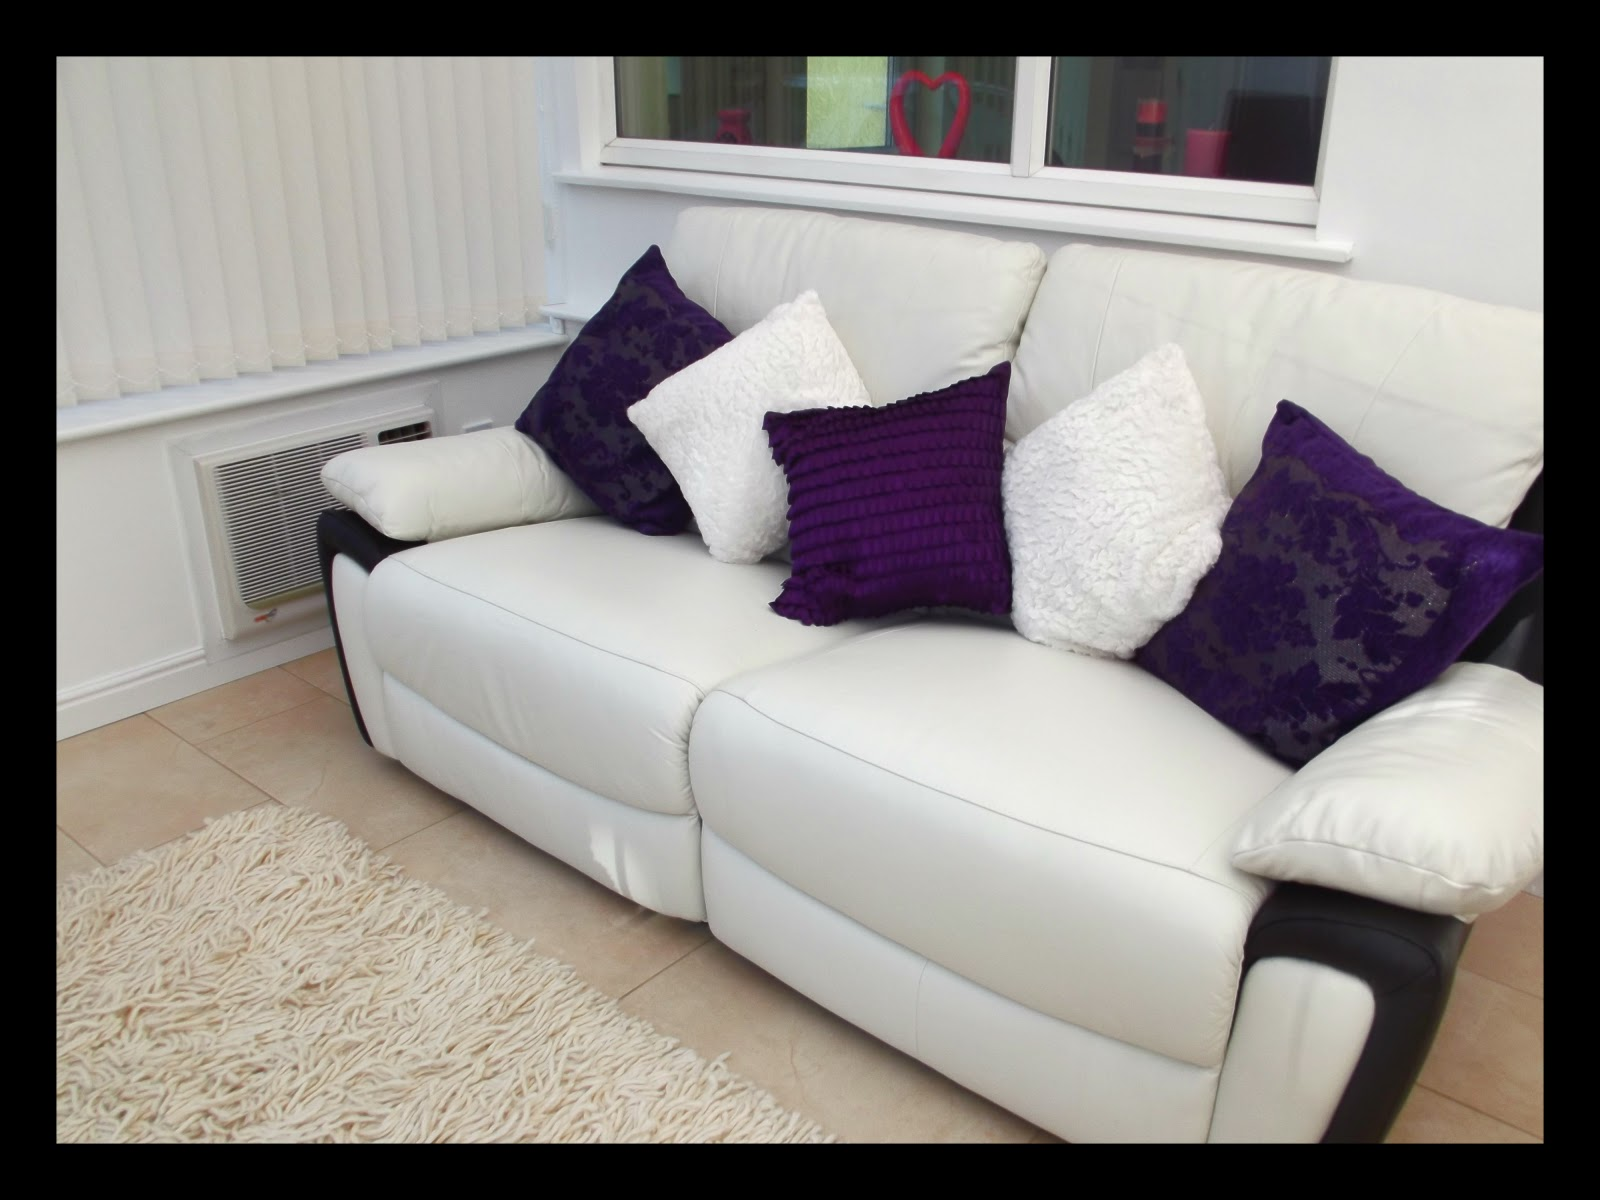 corner sofas for conservatories wrought iron sofa set in pune interior design my conservatory a world full of